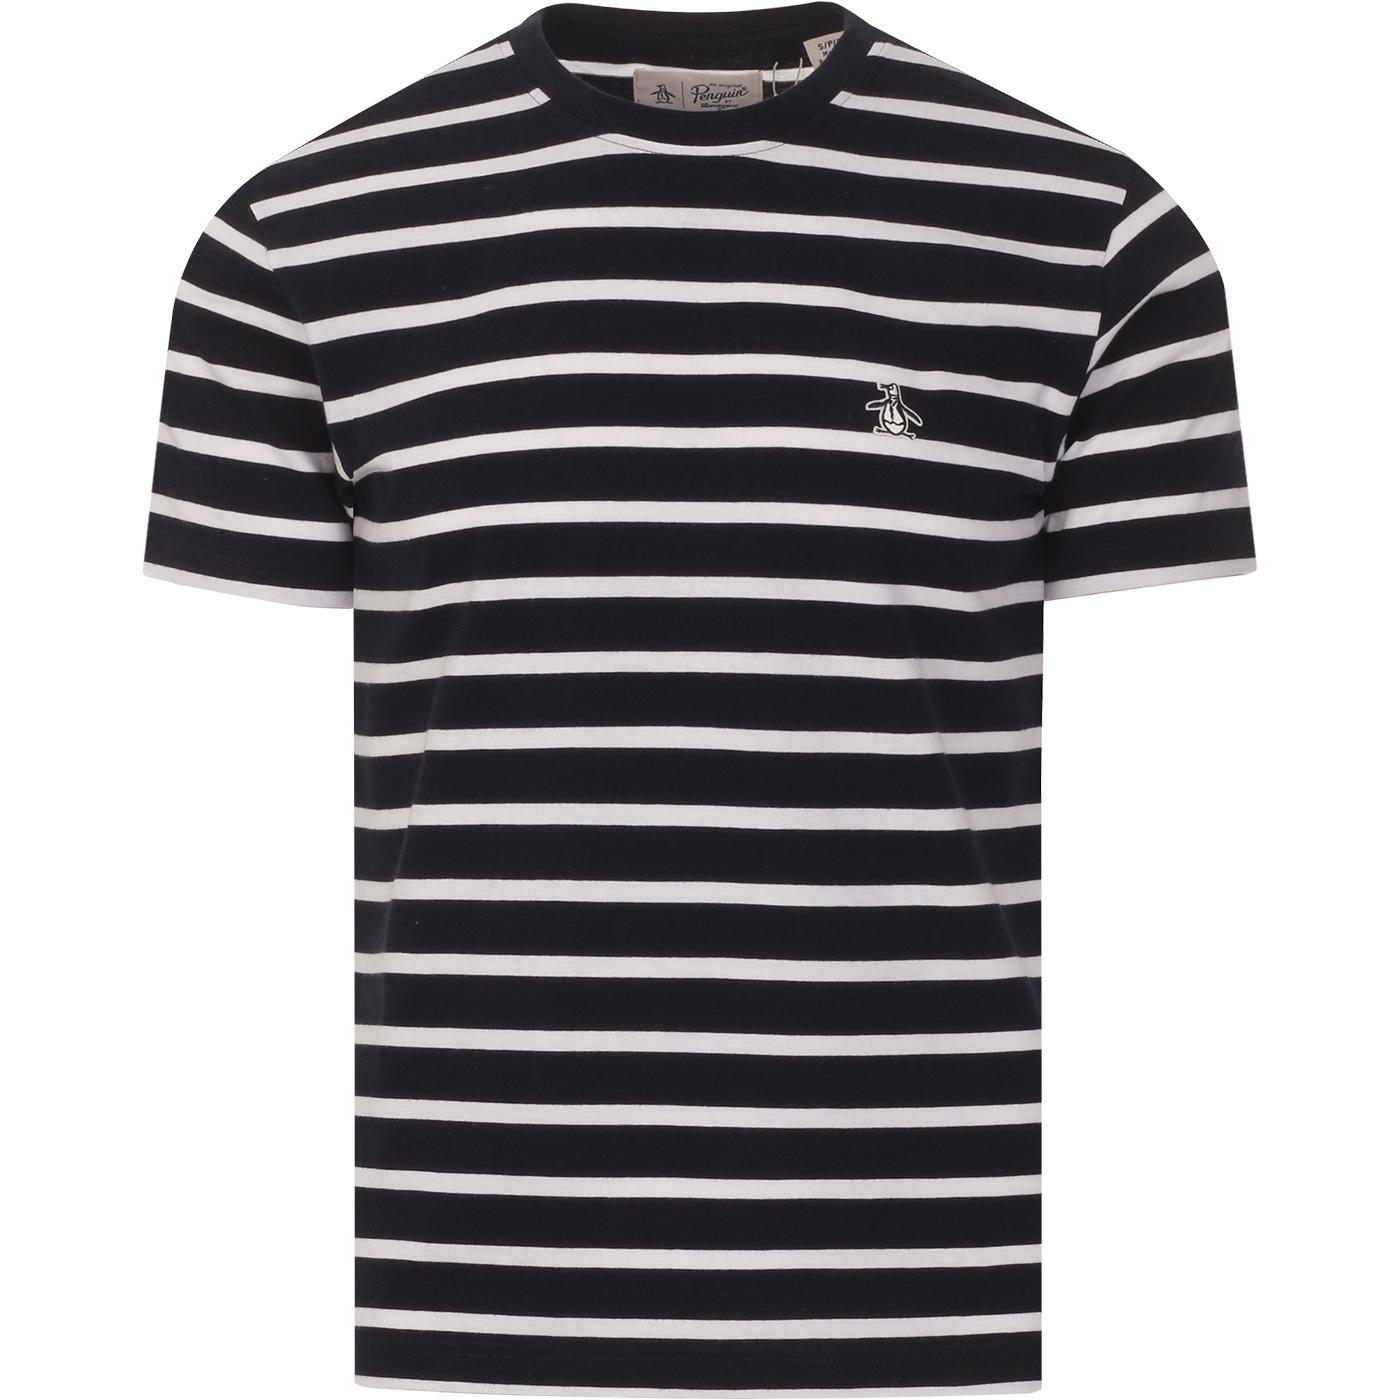 ORIGINAL PENGUIN Retro Mod Breton Stripe Tee (DS)